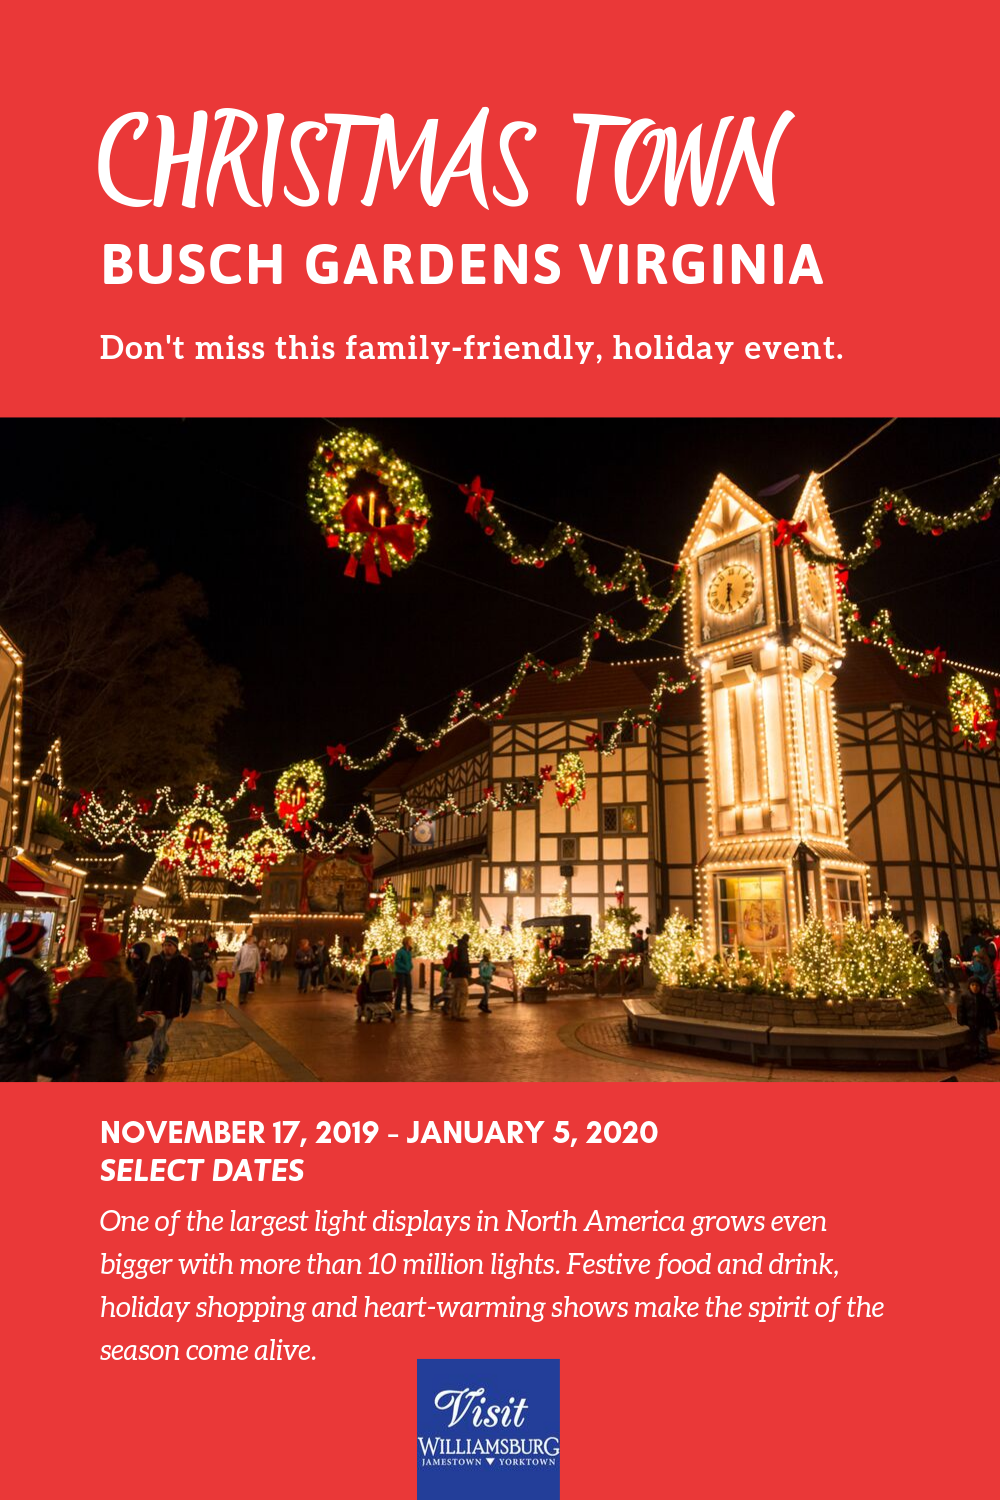 01c4506bd7045e25474f6650a17b9a35 - Prices For Busch Gardens Christmas Town